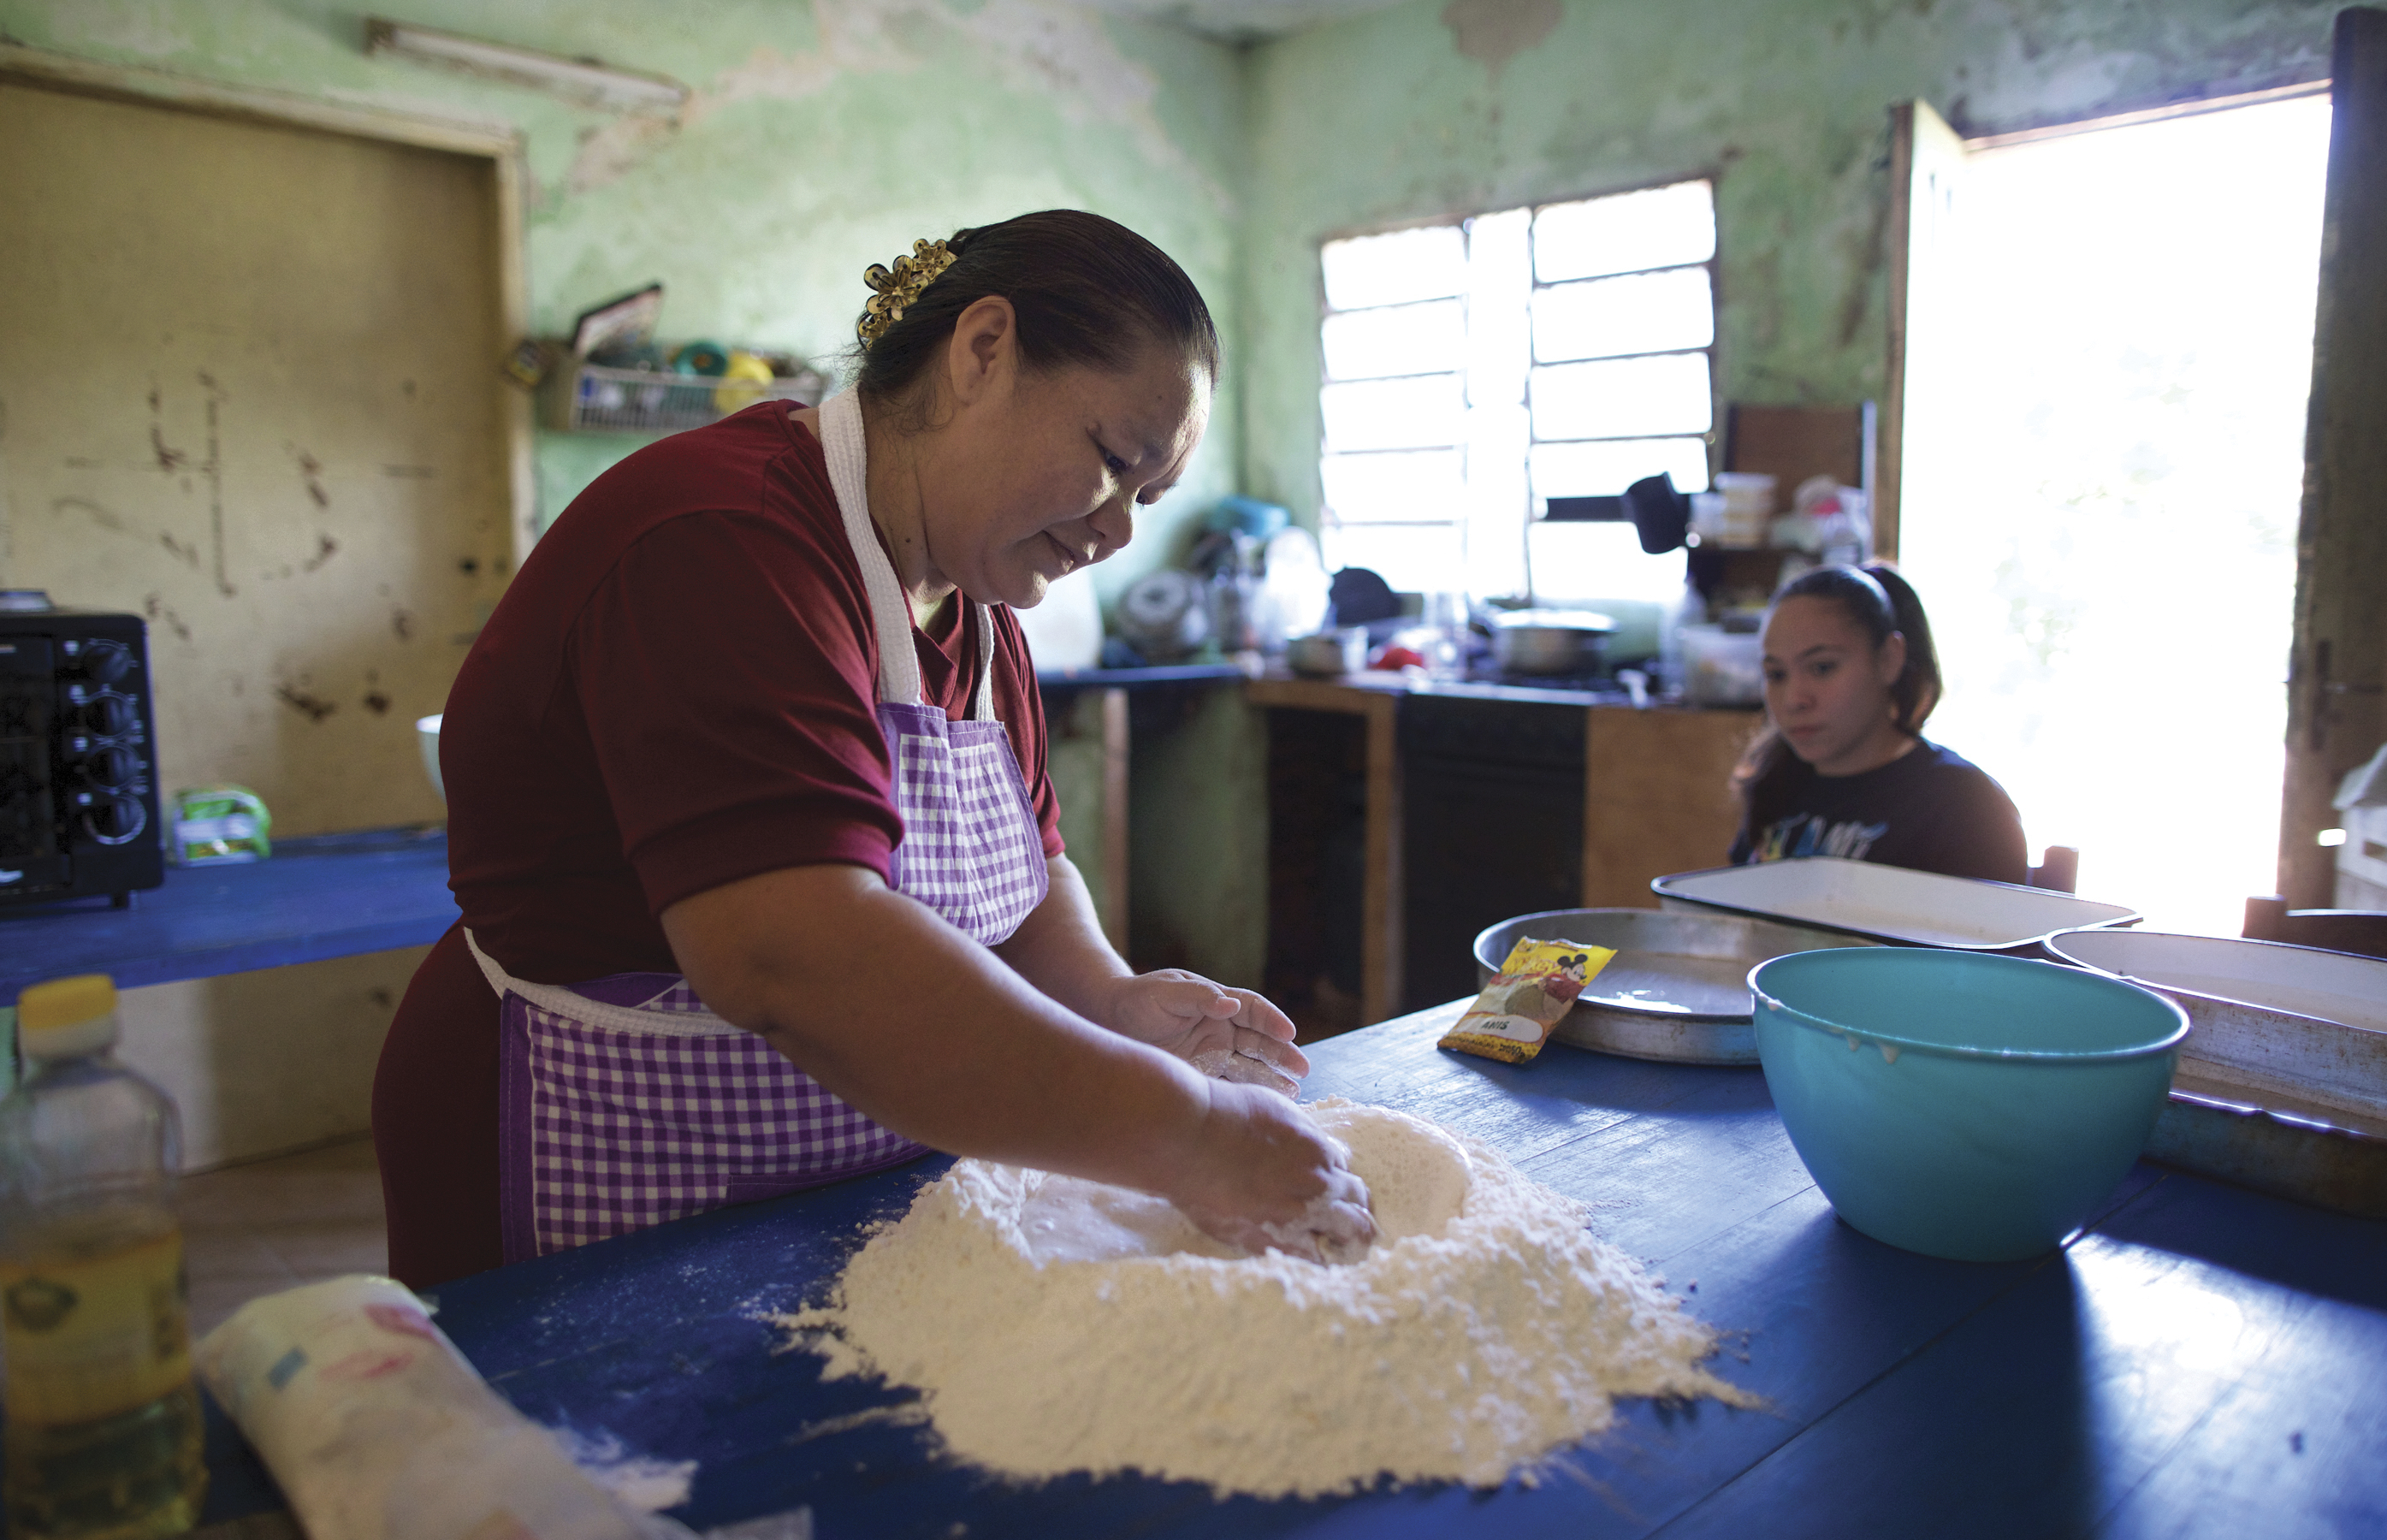 Struggling to make ends meet, Adriana González took one of the Church's self-reliance courses and decided that she could bake and sell bread.